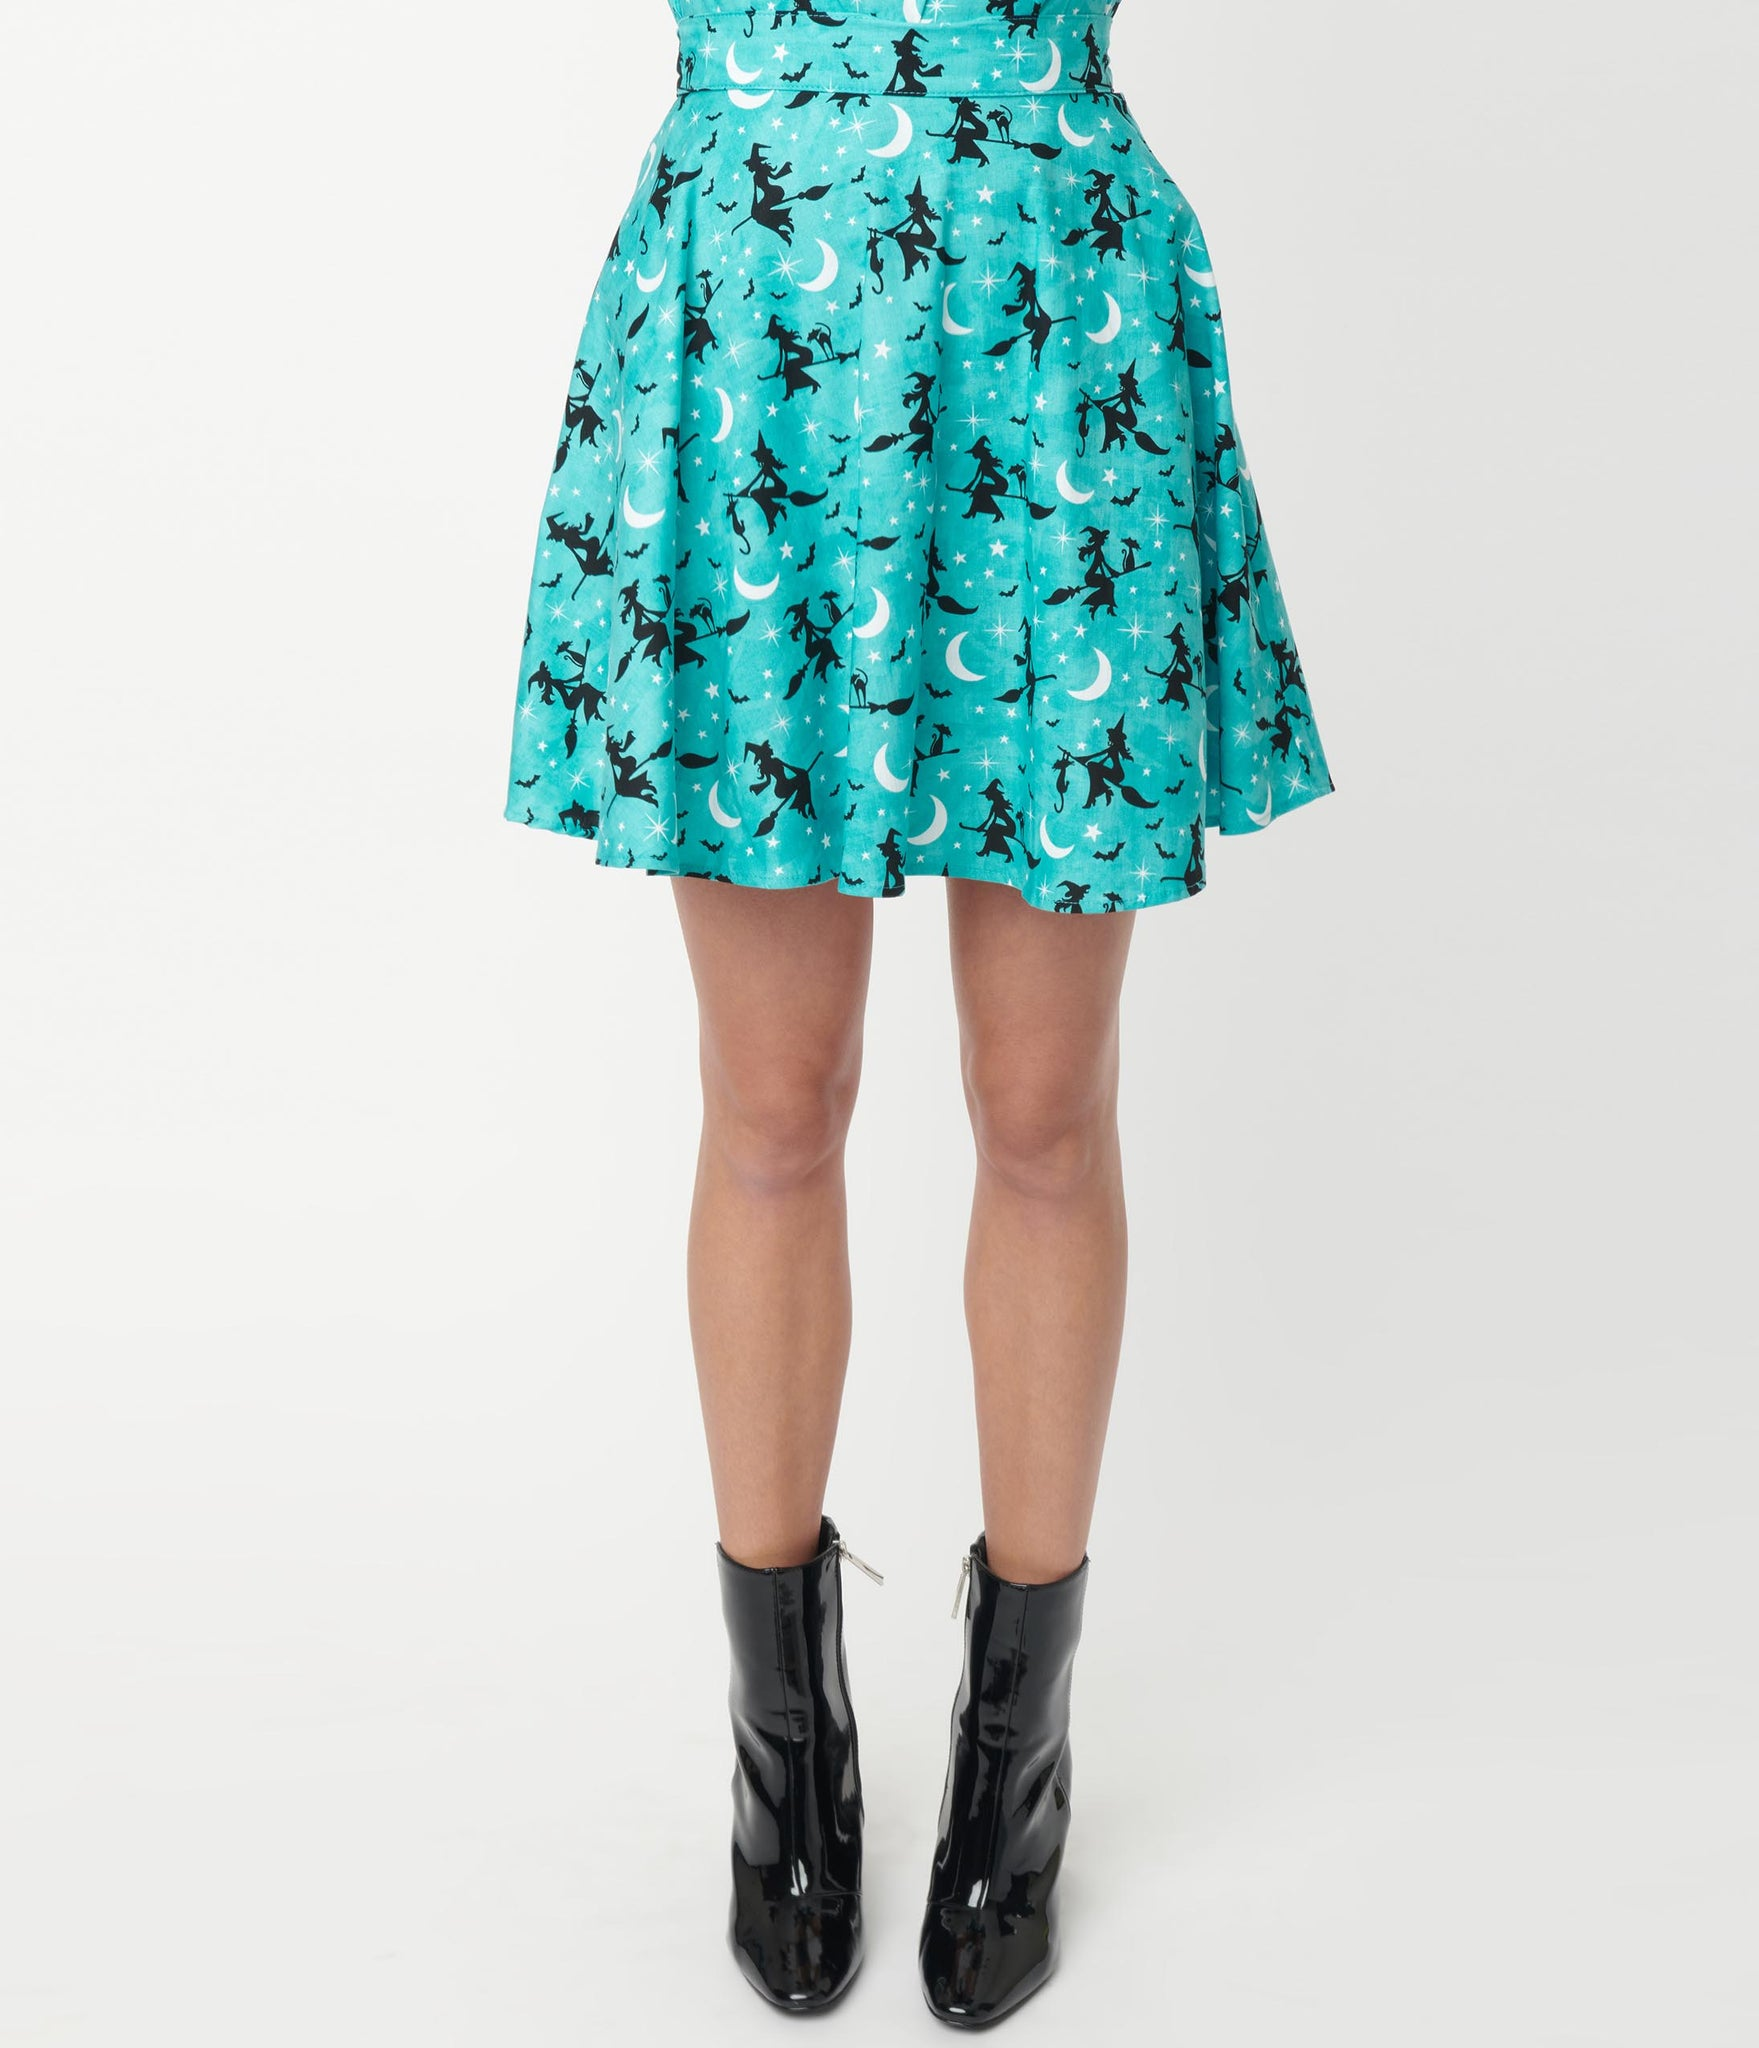 Retrolicious Turquoise Witchy Print Skater Skirt